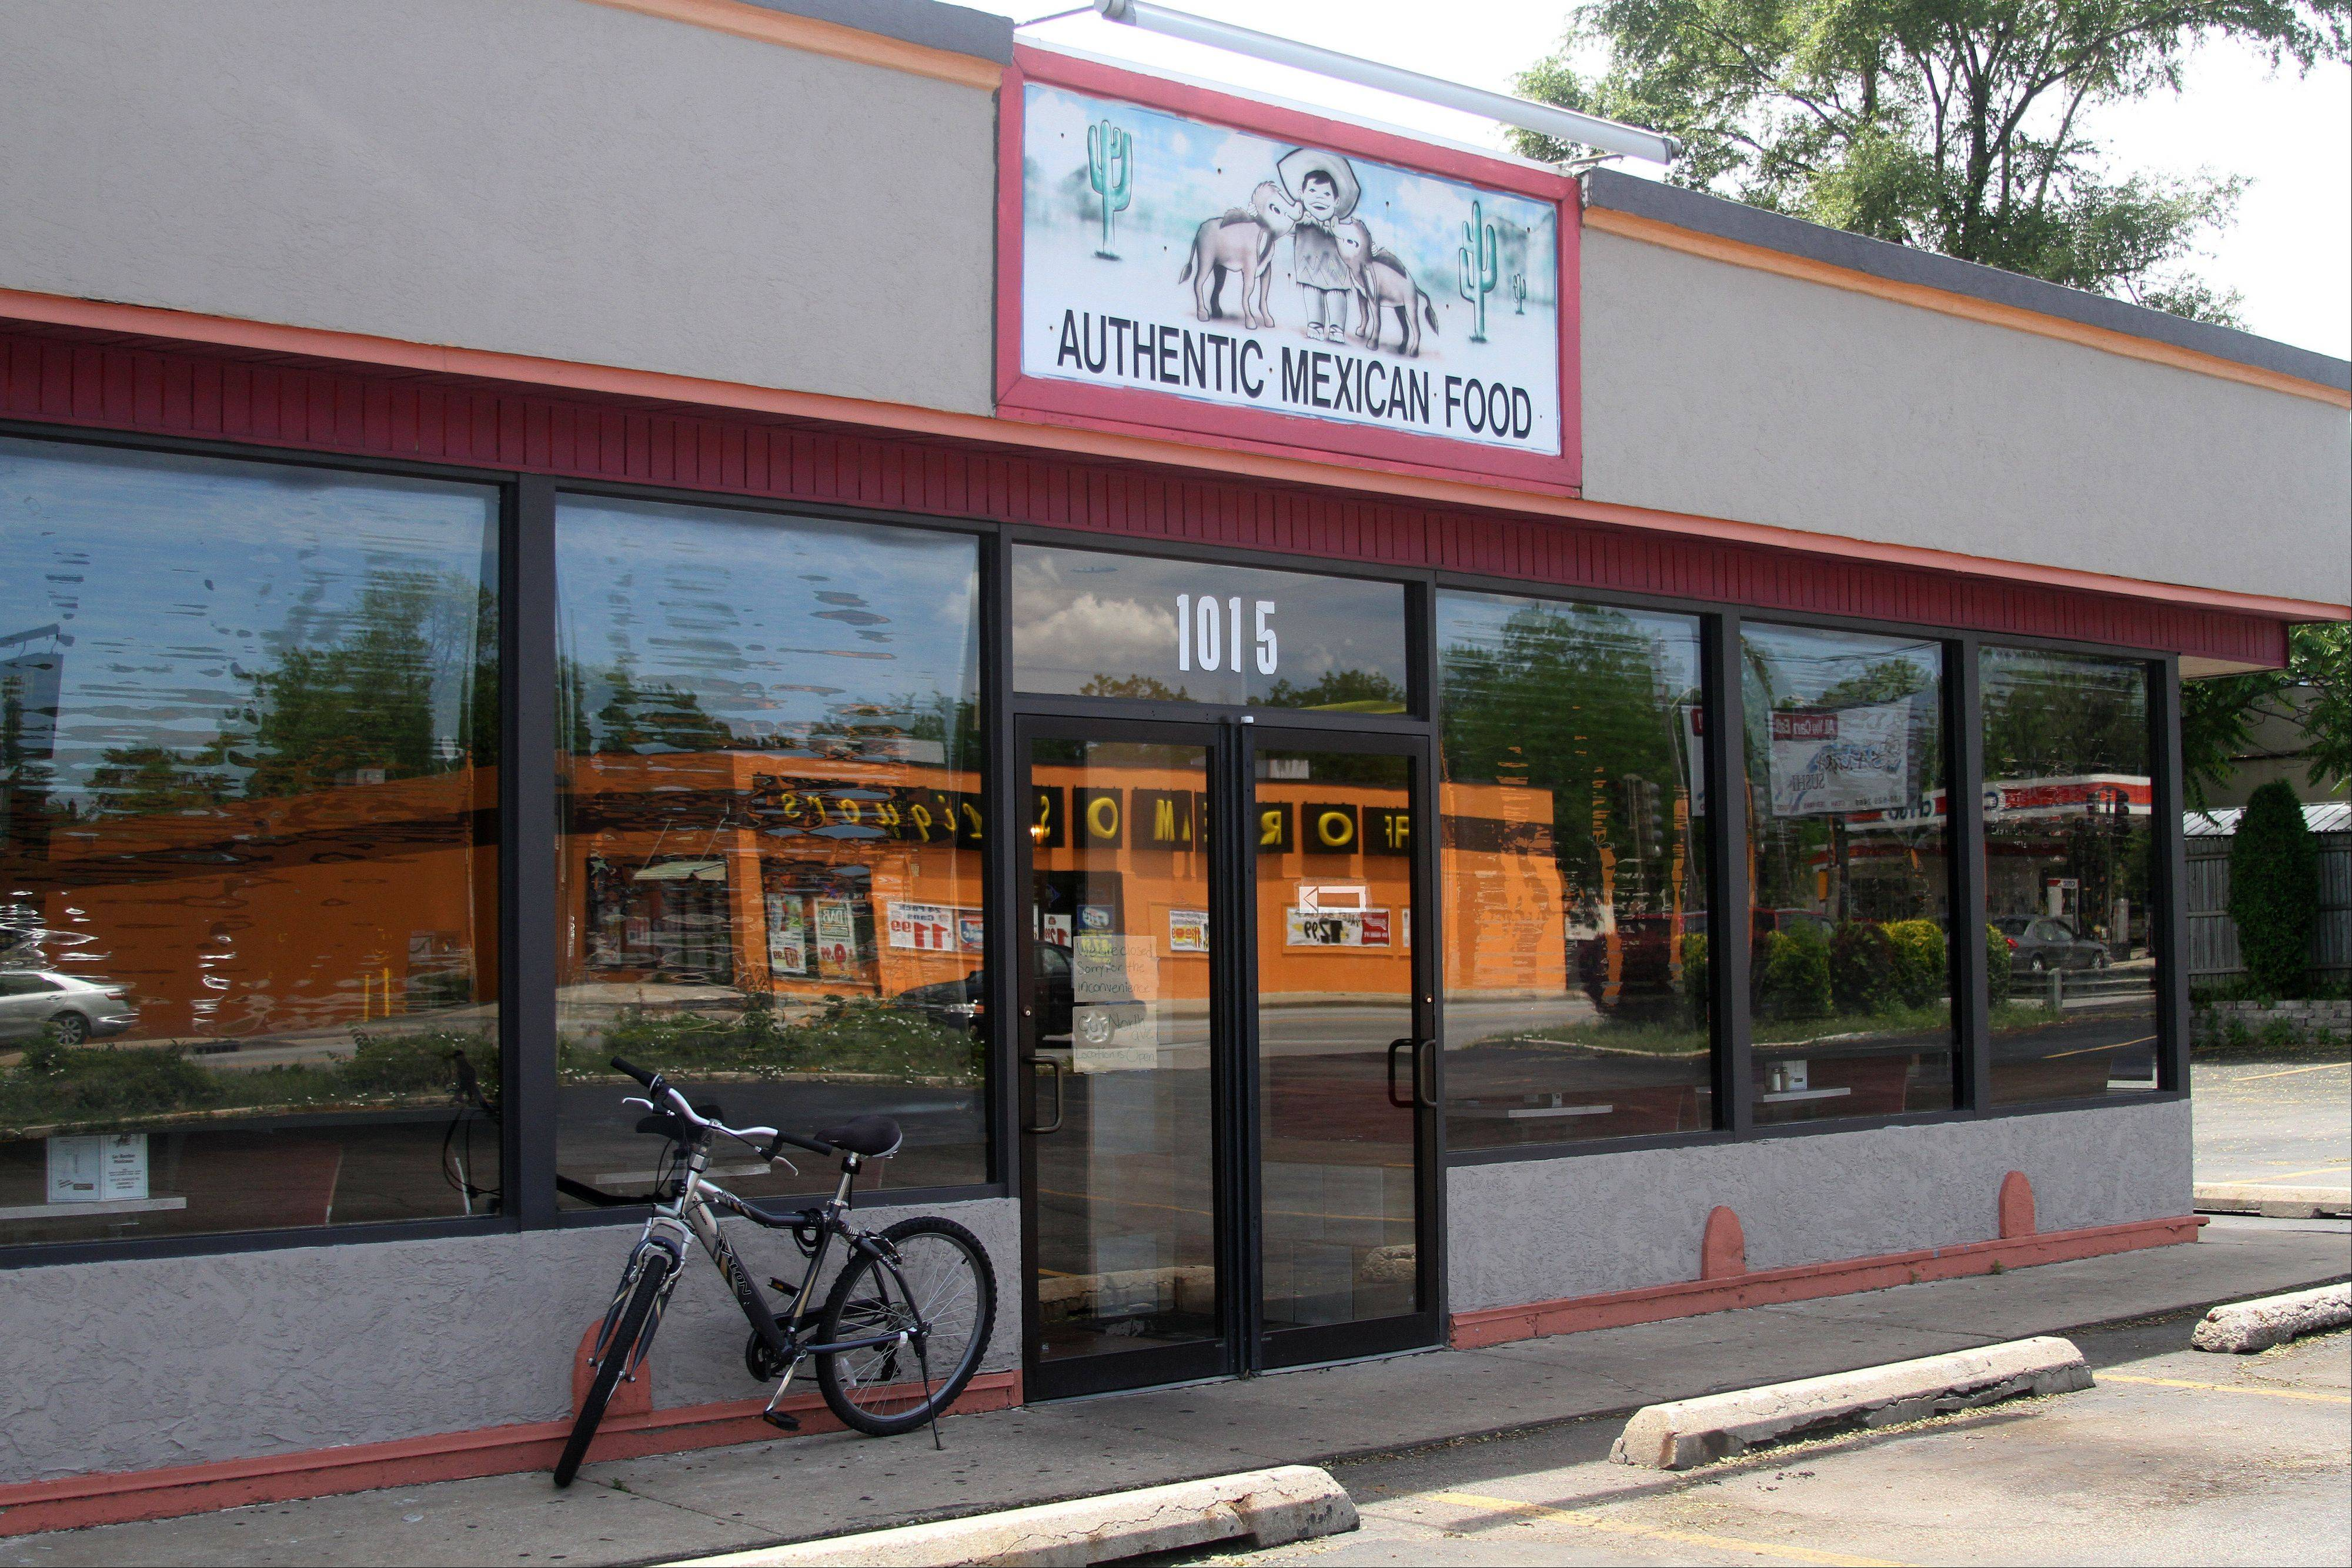 The Los Burritos Mexicanos restaurant at 1015 E. St. Charles Road in Lombard is being sued by a Lombard woman who says she became ill after eating there. The restaurant has been closed for more than a week since state health officials confirmed E. coli cases among customers of the restaurant.